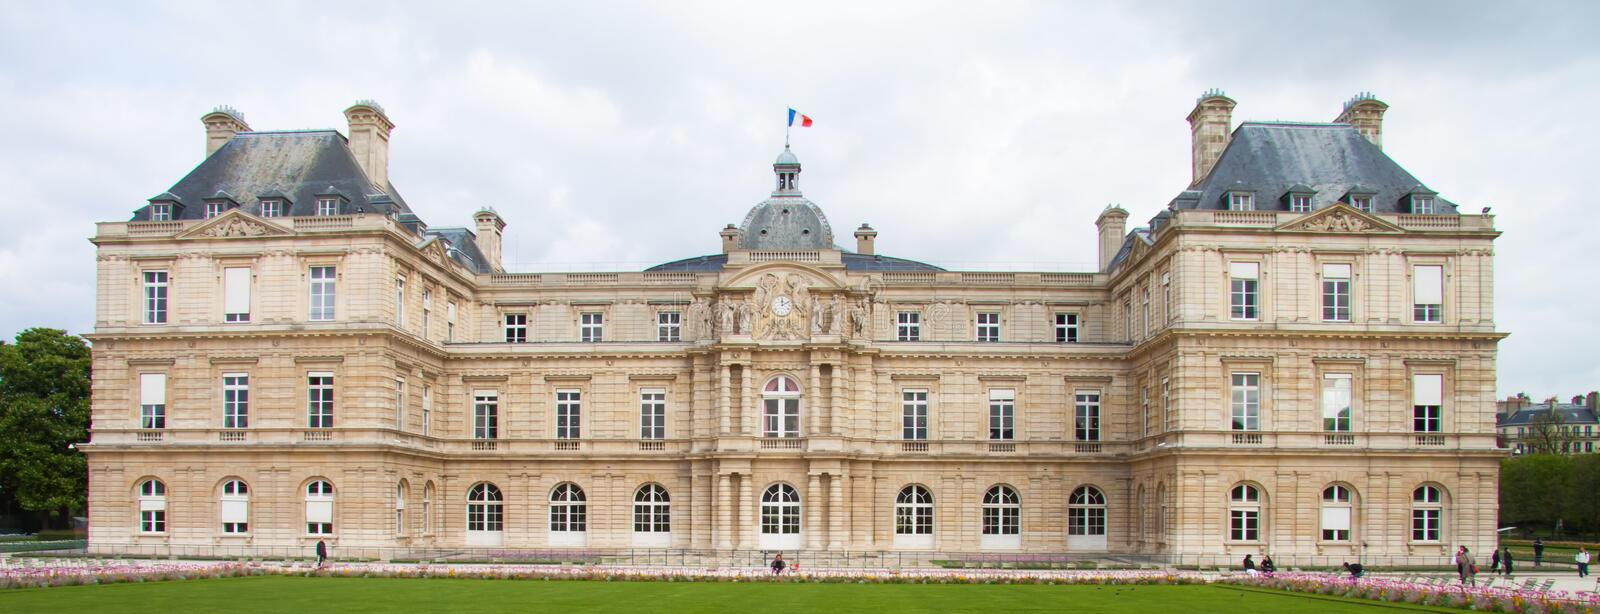 Luxembourg Palace Palais du Luxembourg in the Luxembourg Gardens in Paris royalty free stock photo